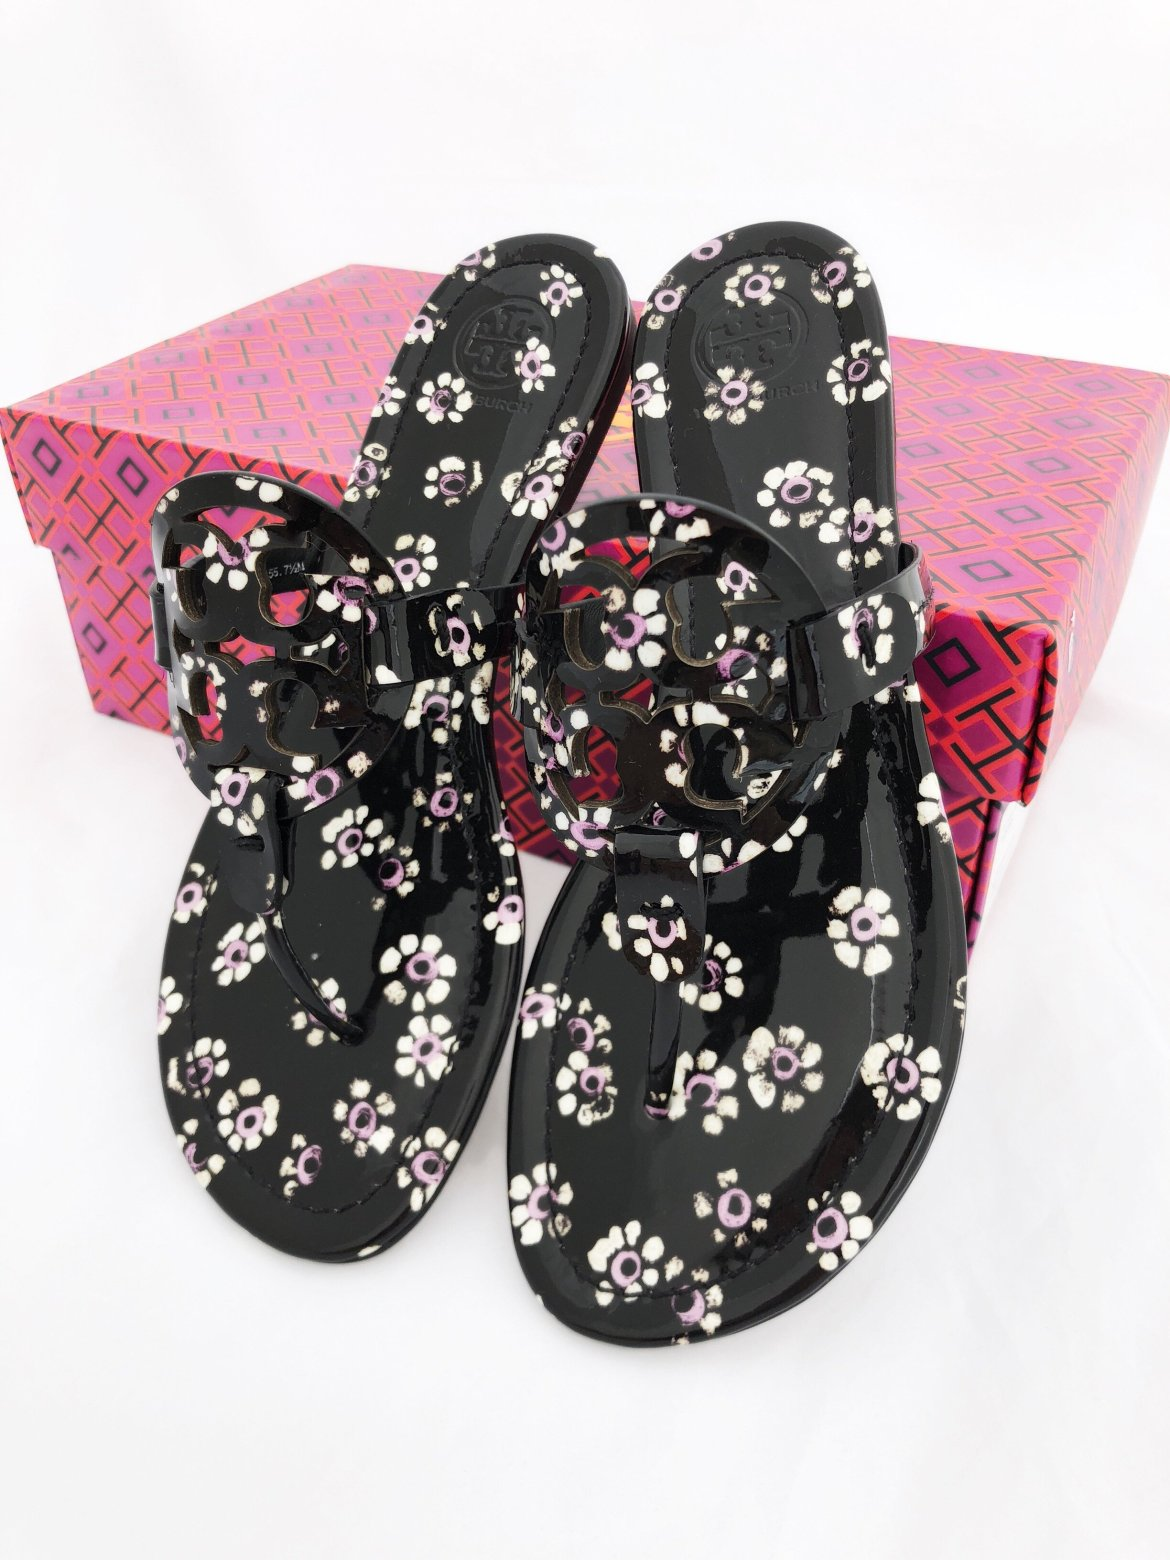 Tory Burch Miller Sandals Thong Flip Flop Patent Leather Black Floral 7.5 from Gaby's Bags, LLC.